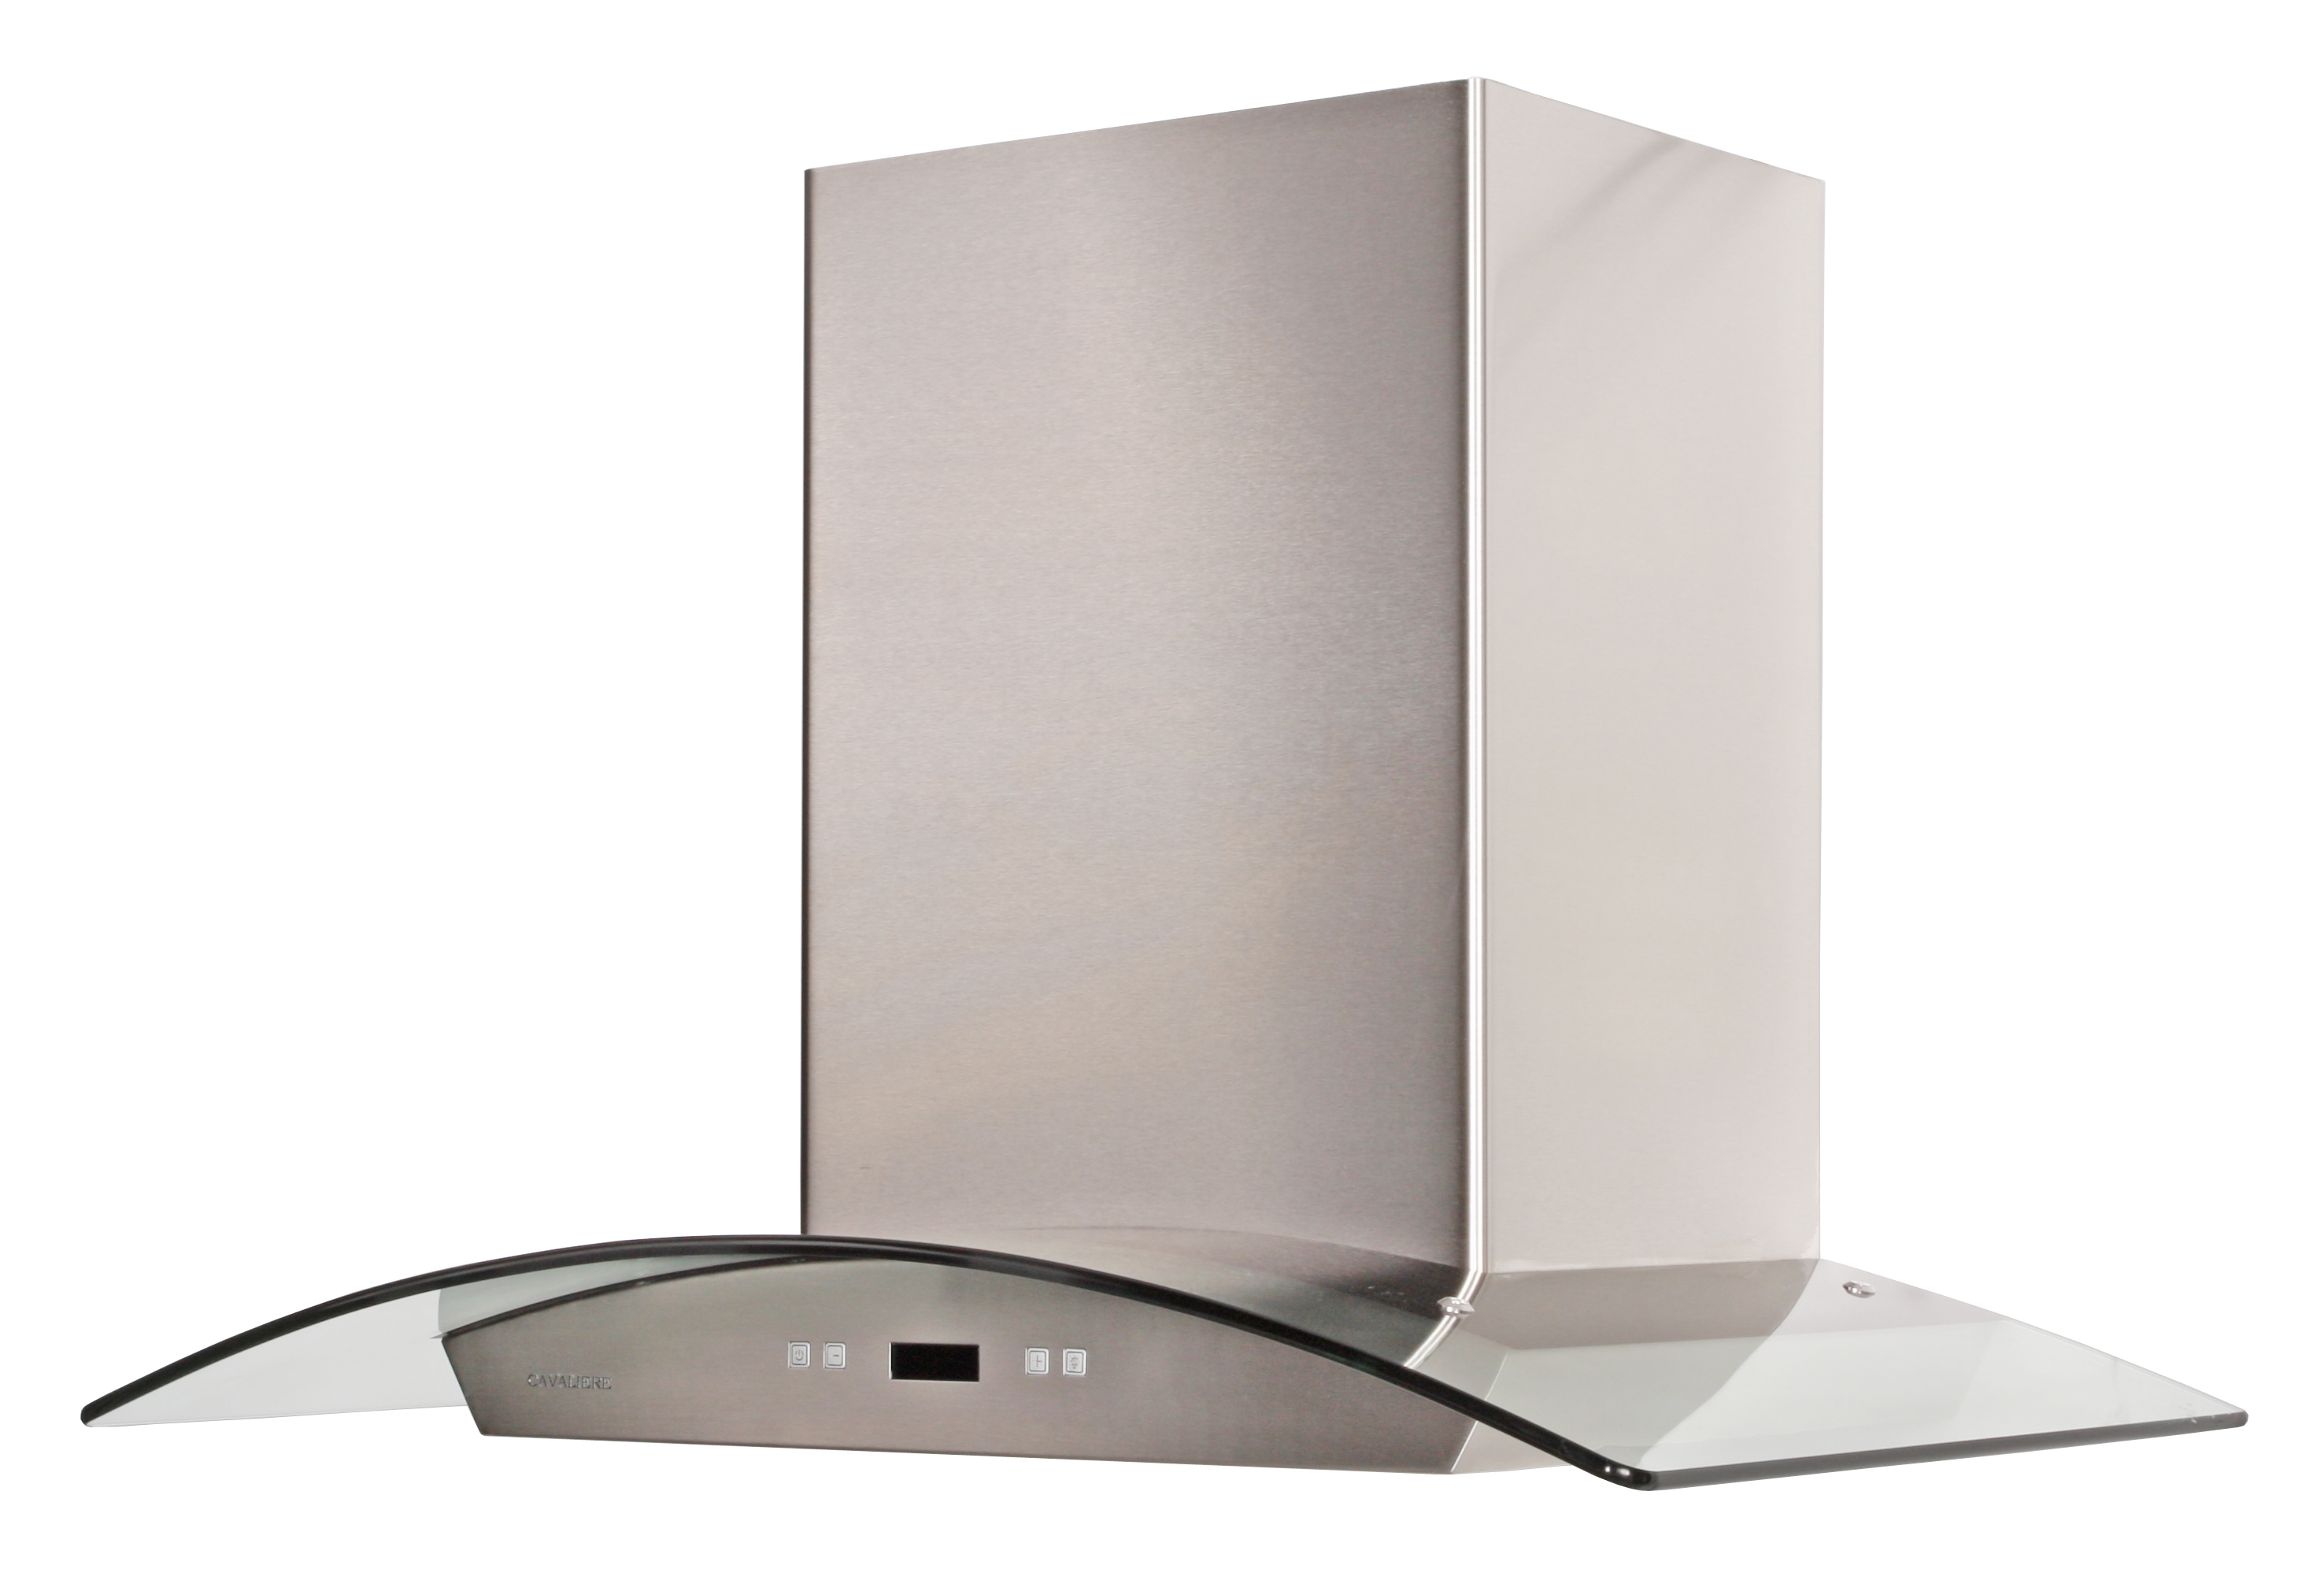 Cavaliere 36 Wall Mounted Range Hood Stainless Steel SV218D 36 eBay #71625A